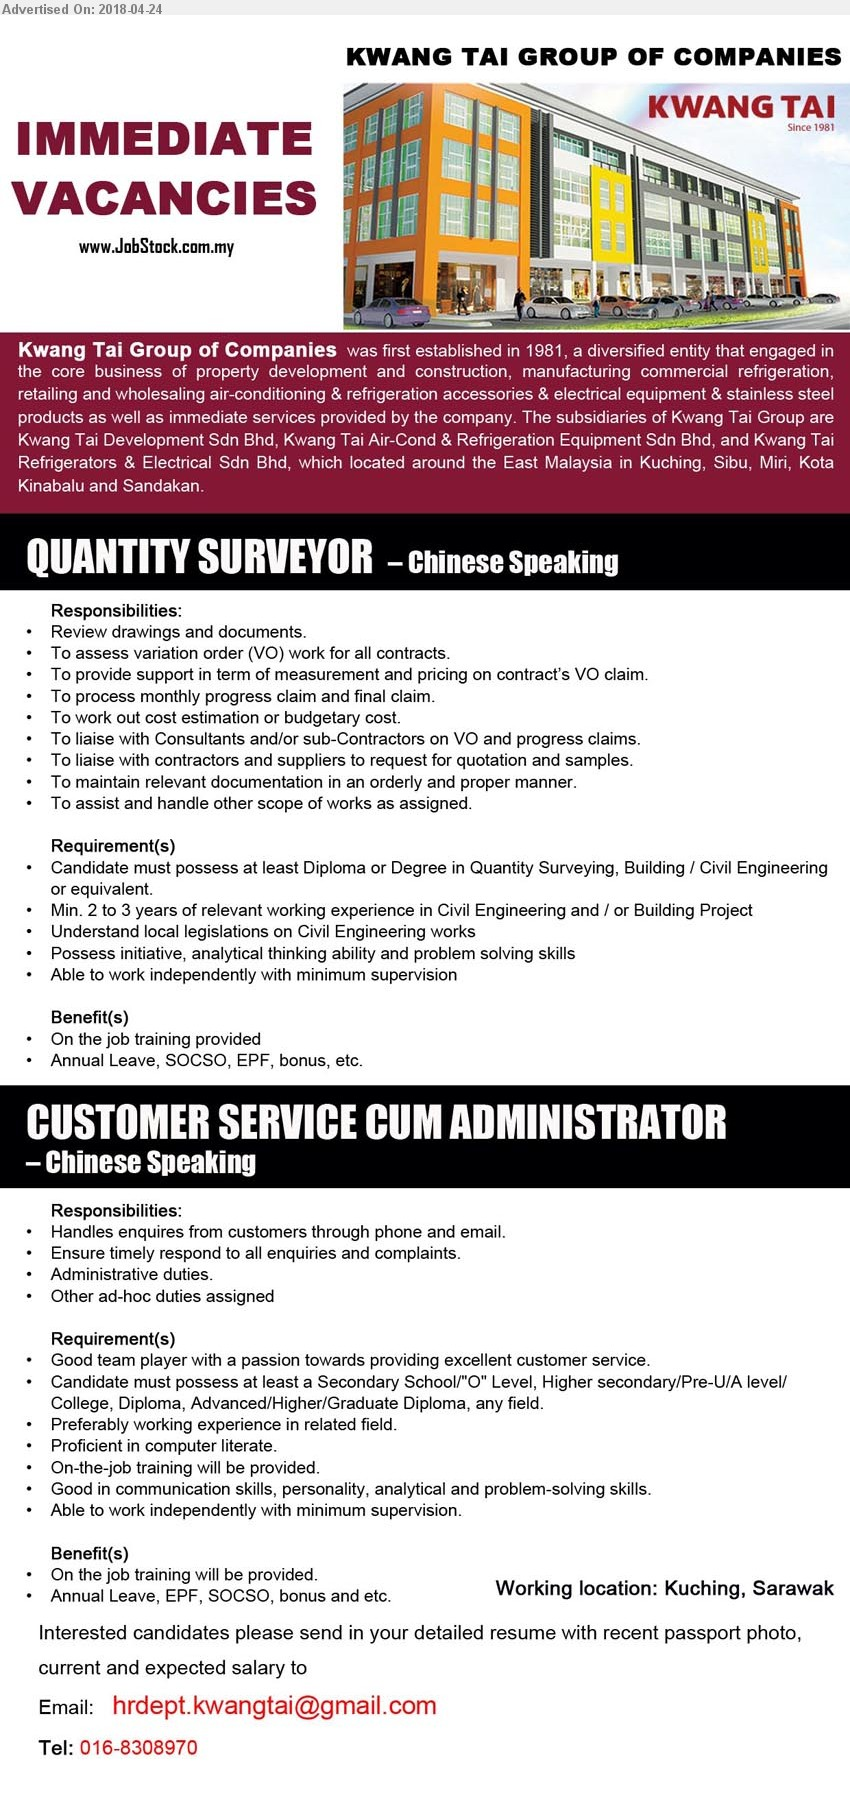 chinese speaking job